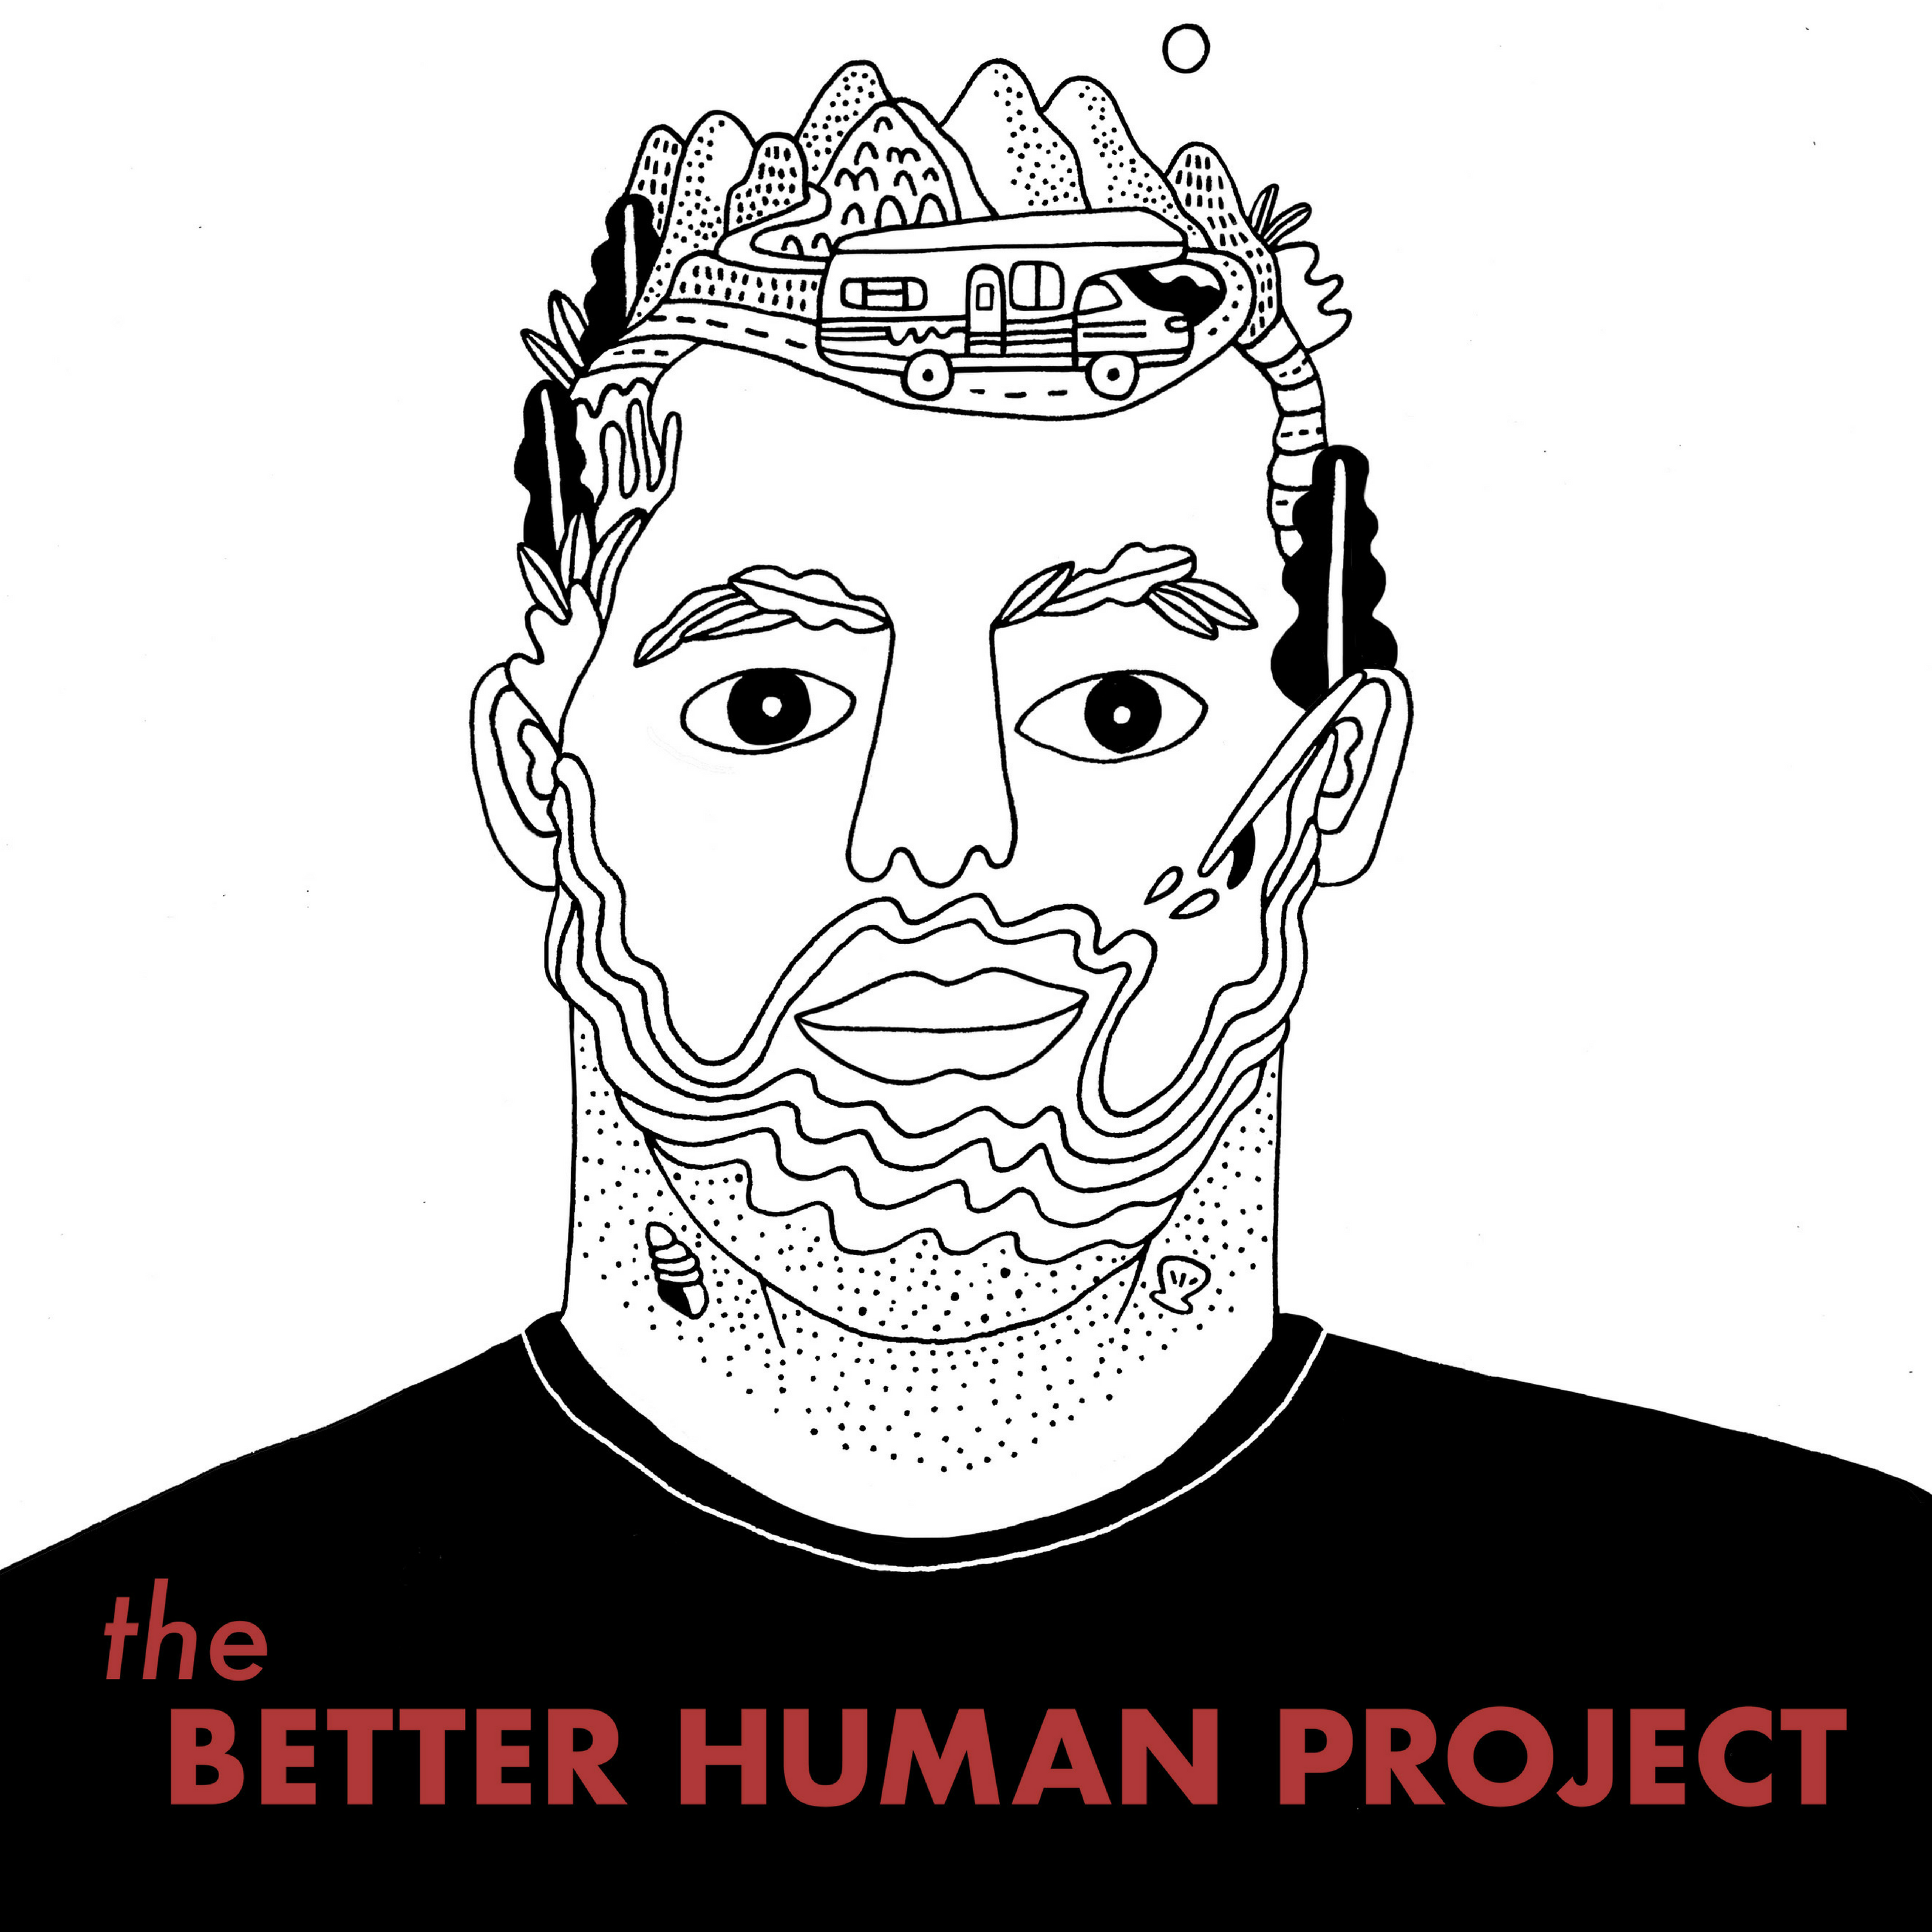 The Better Human Project